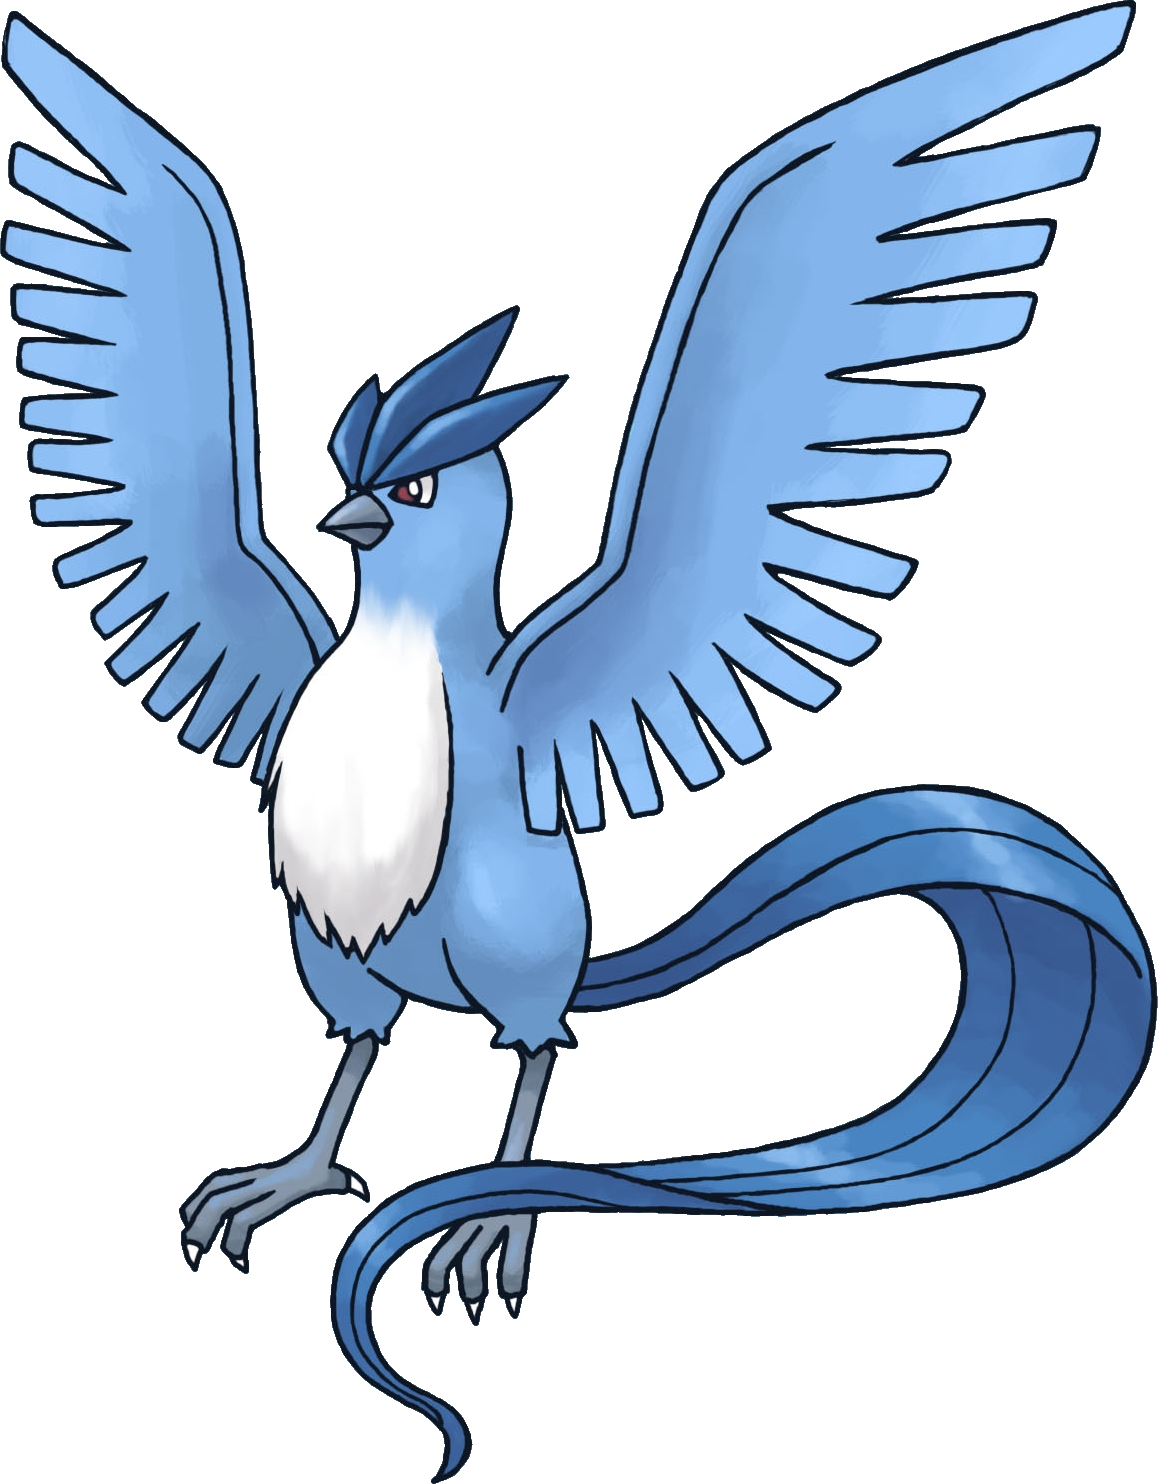 freeuse stock Pokemon pokedex from kanto. Articuno drawing